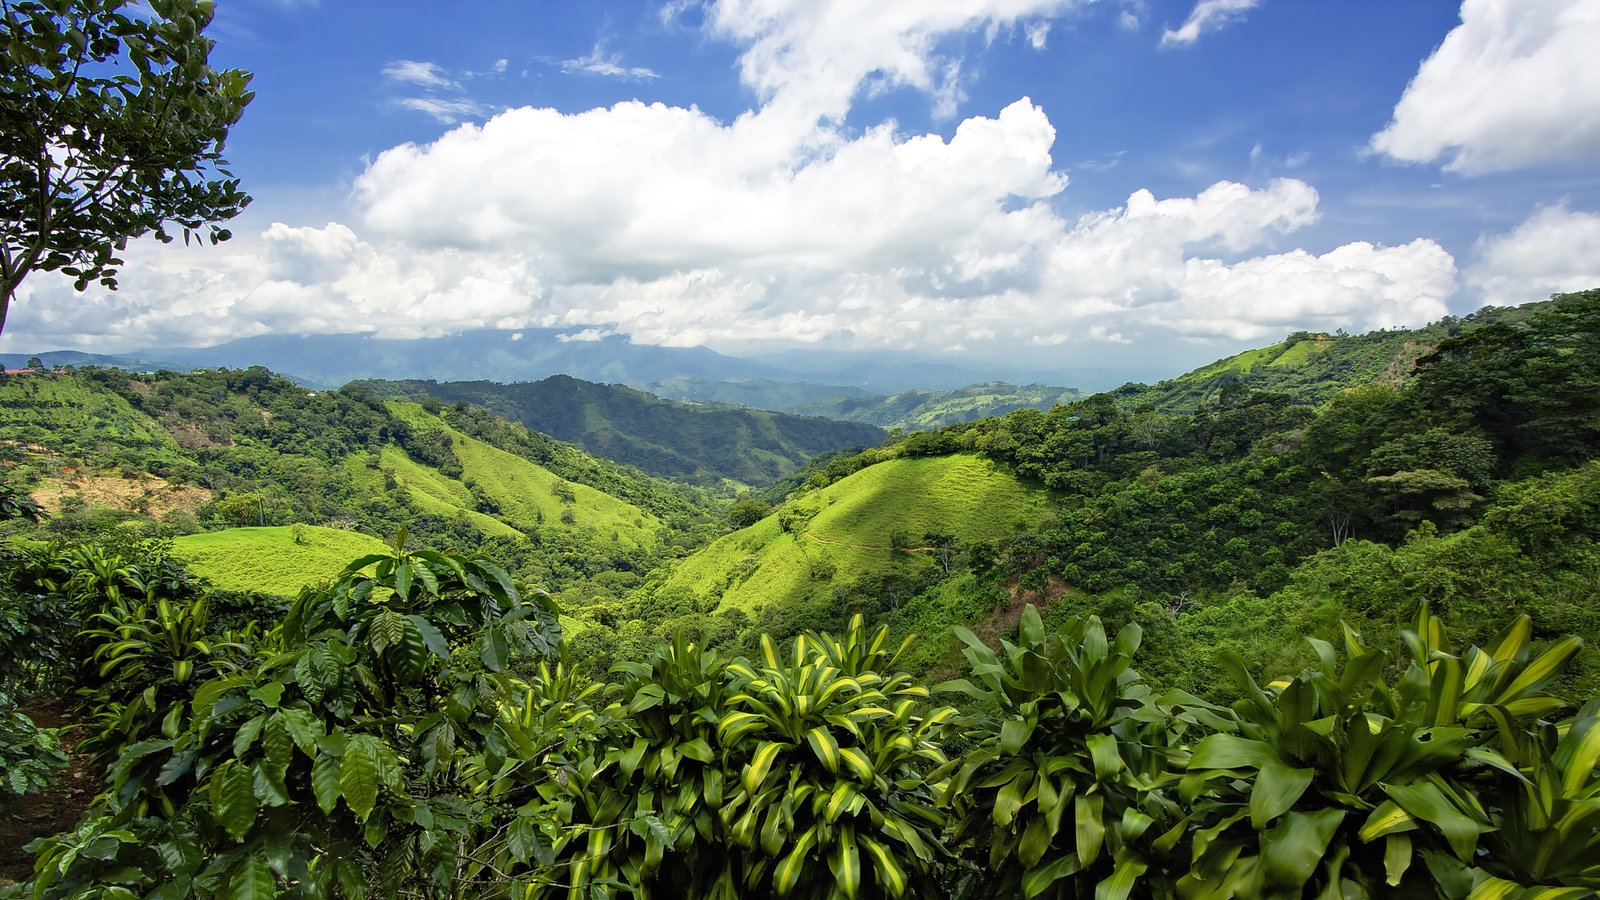 San Jose featuring rainforest and tranquil scenes